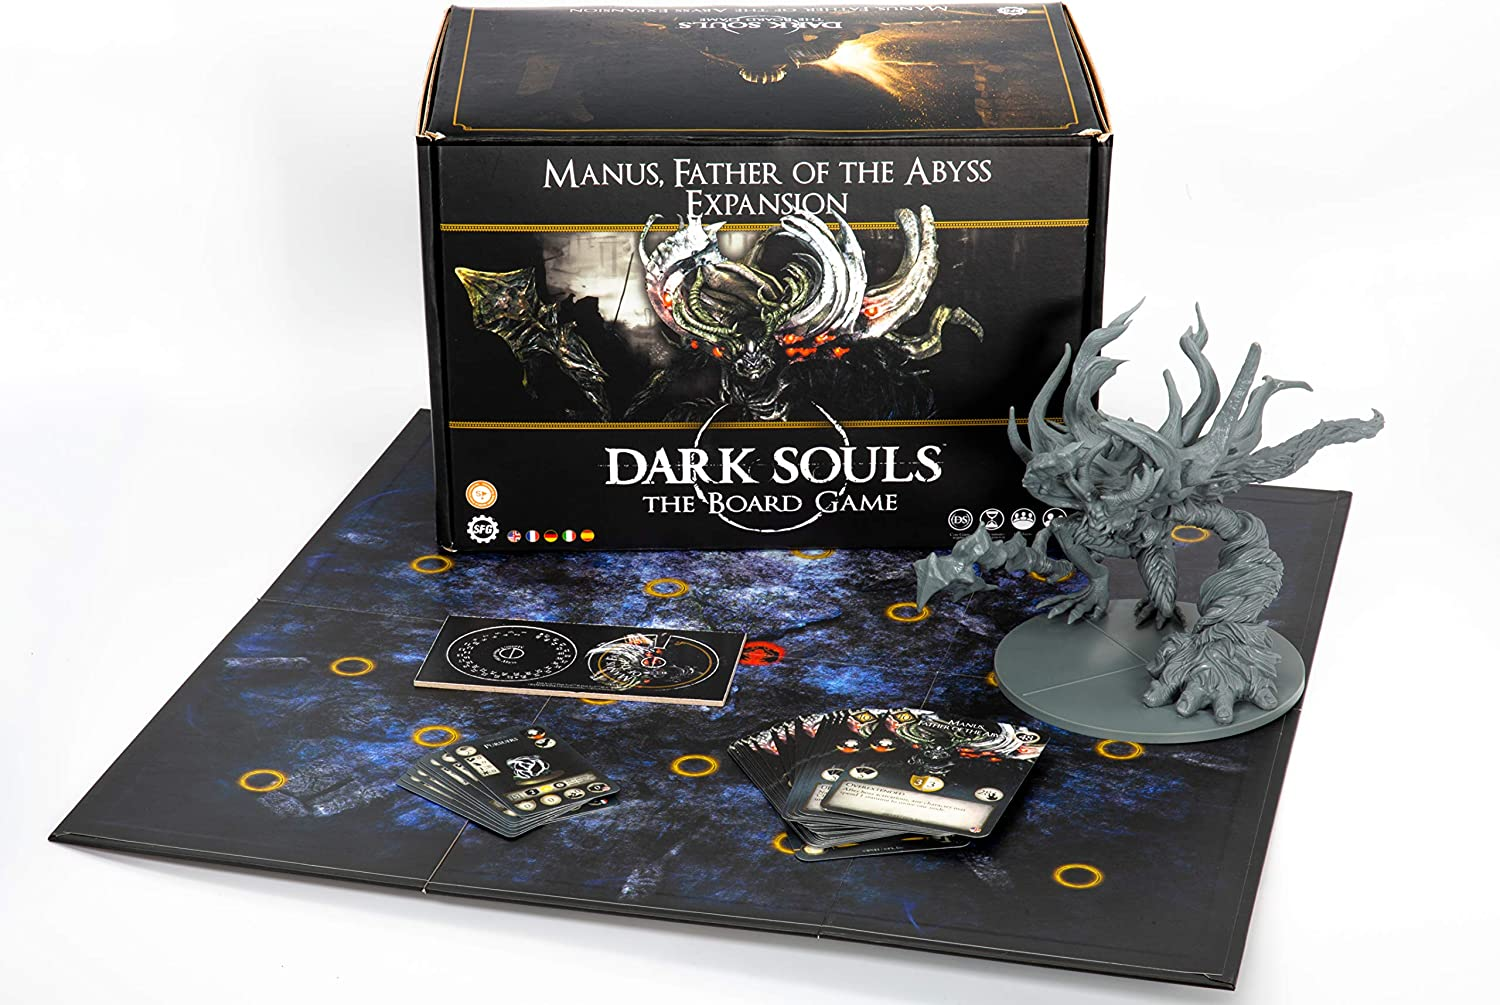 Dark Souls The Board Game: Wave 4 - Manus, Father of the Abyss Expansion [DAMAGED]